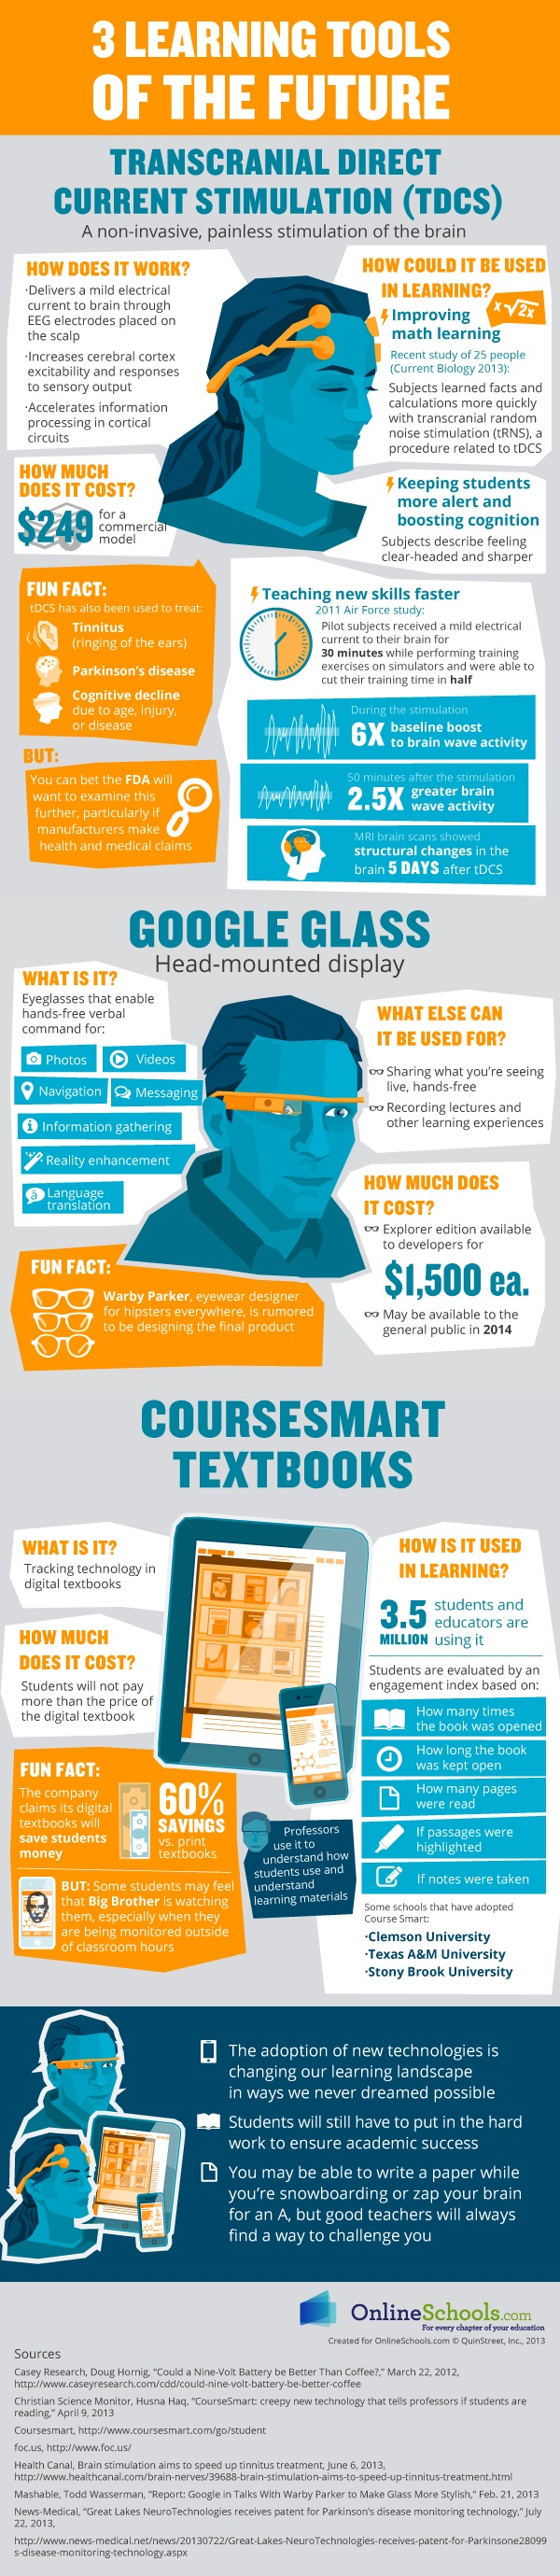 Google Glass, Coursesmart textbooks, TDCS